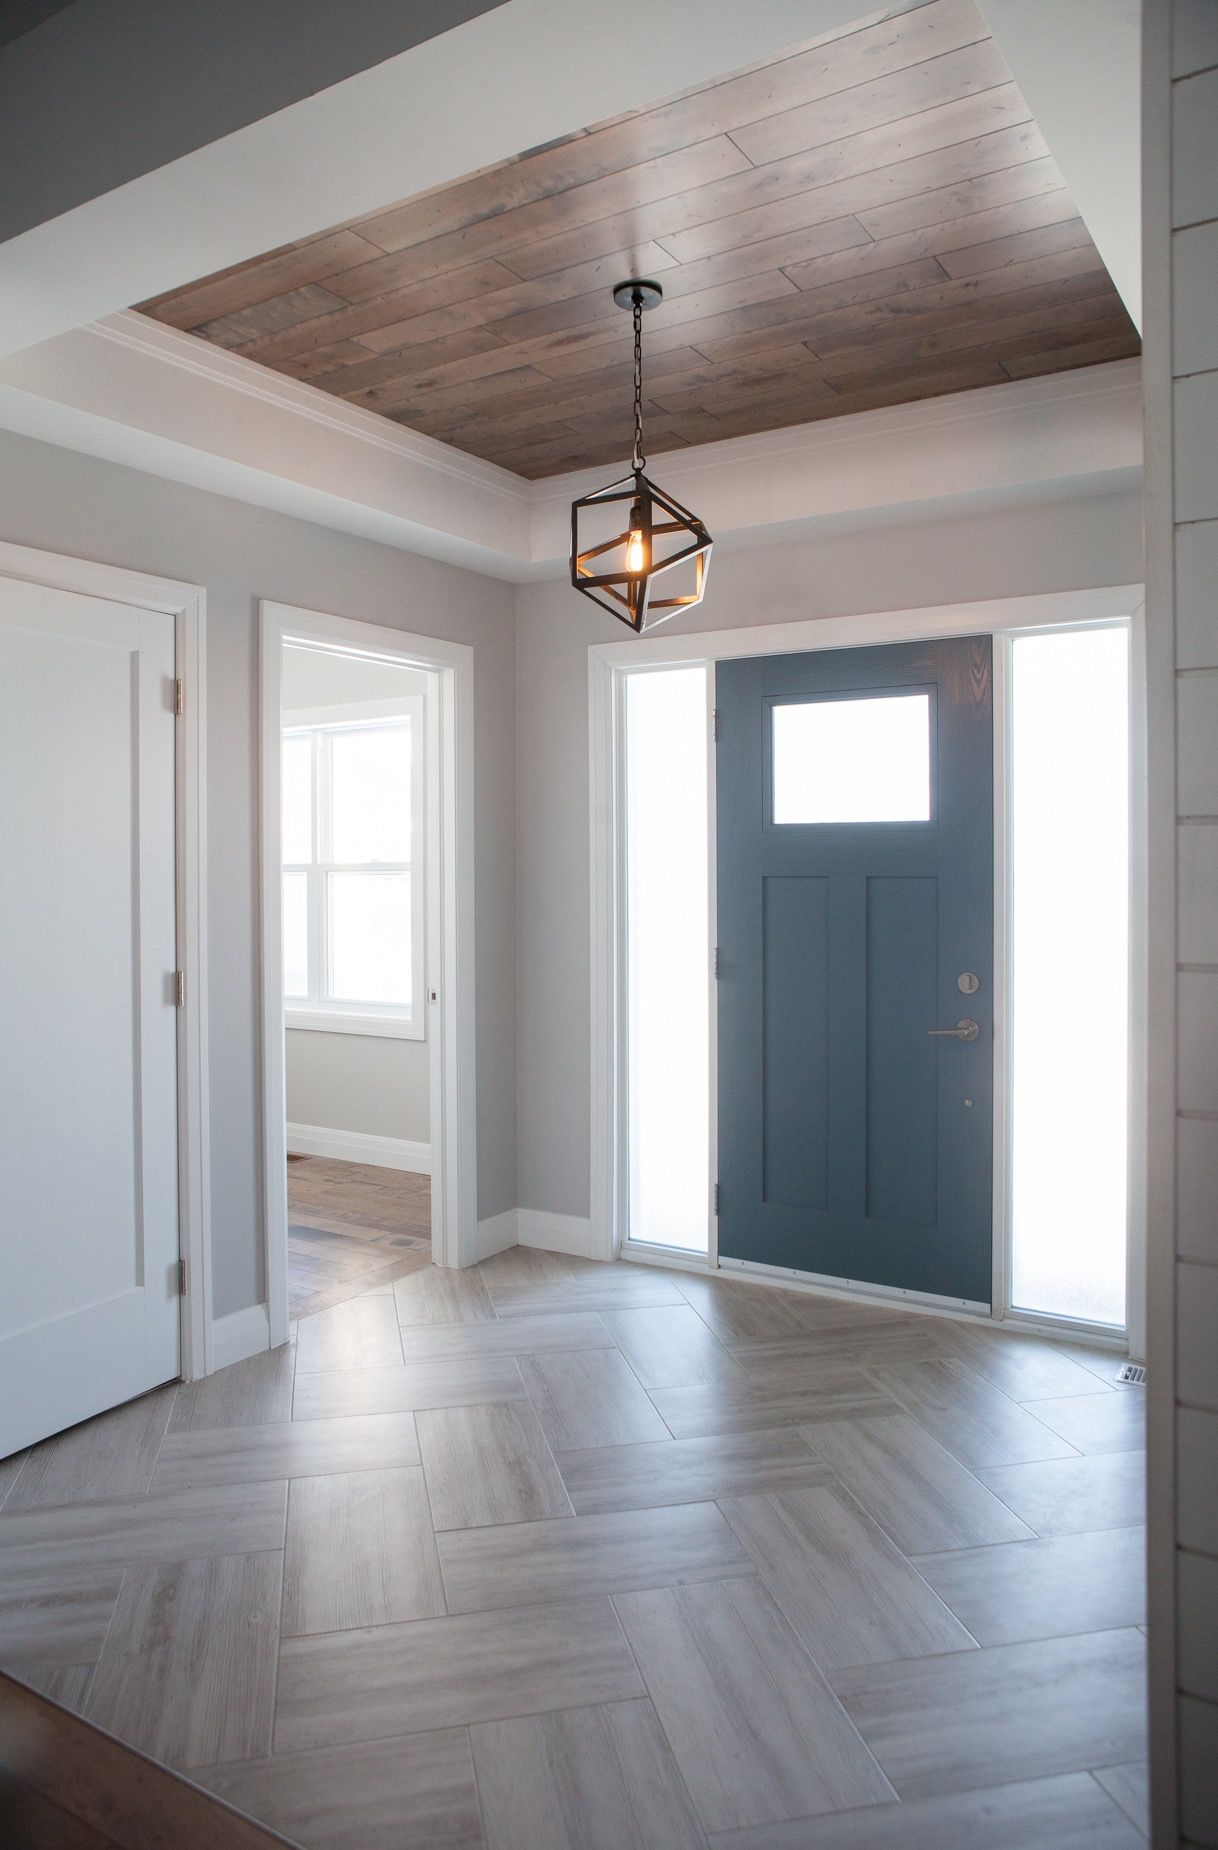 Foyer Ceiling Zip : The front foyer of this home leaves a lasting first